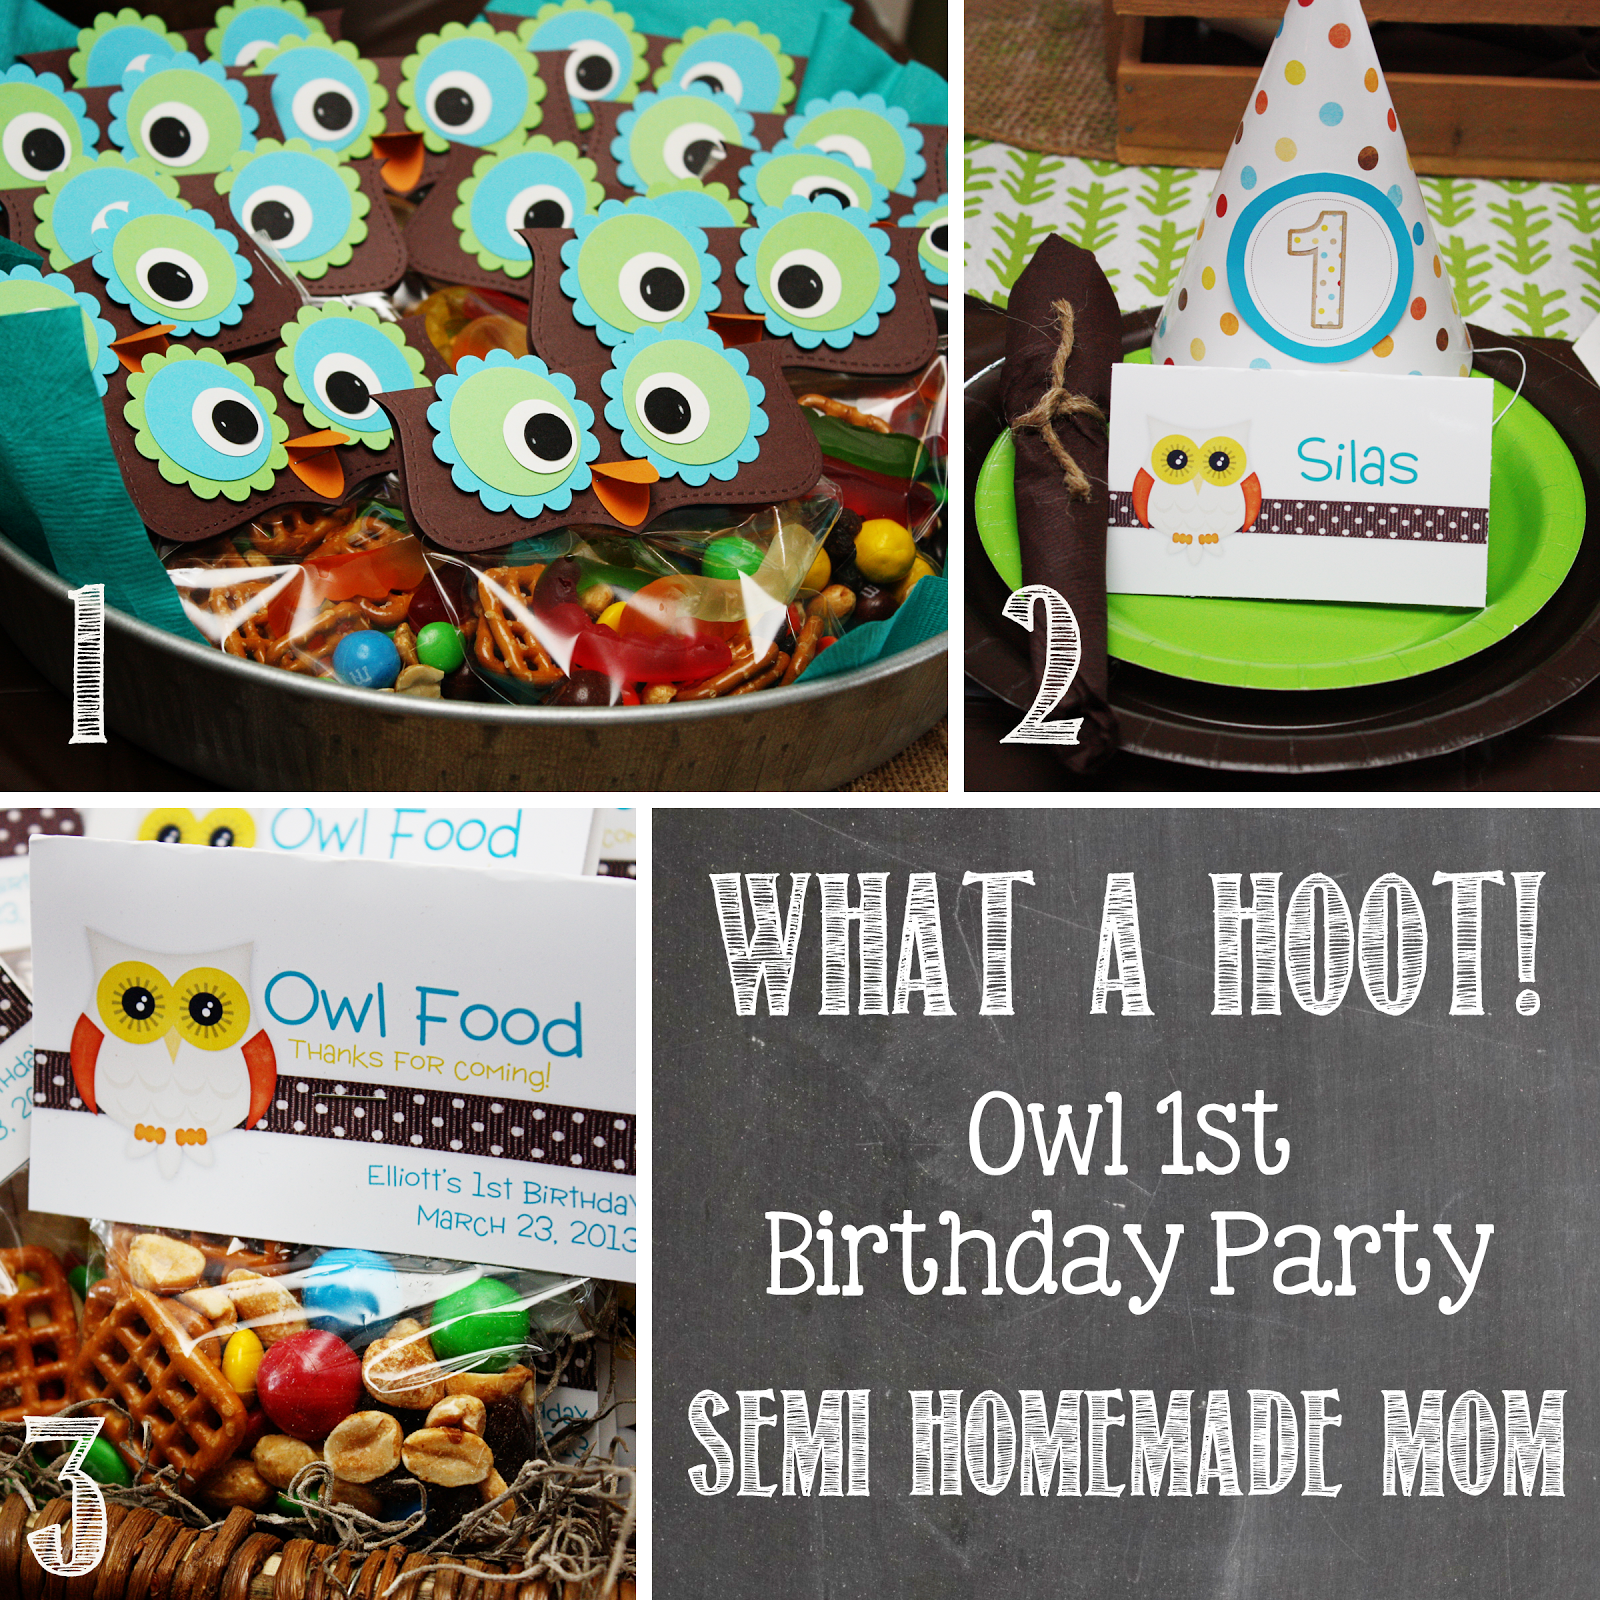 Owl 1st Birthday Party Semi homemade Owl and Homemade